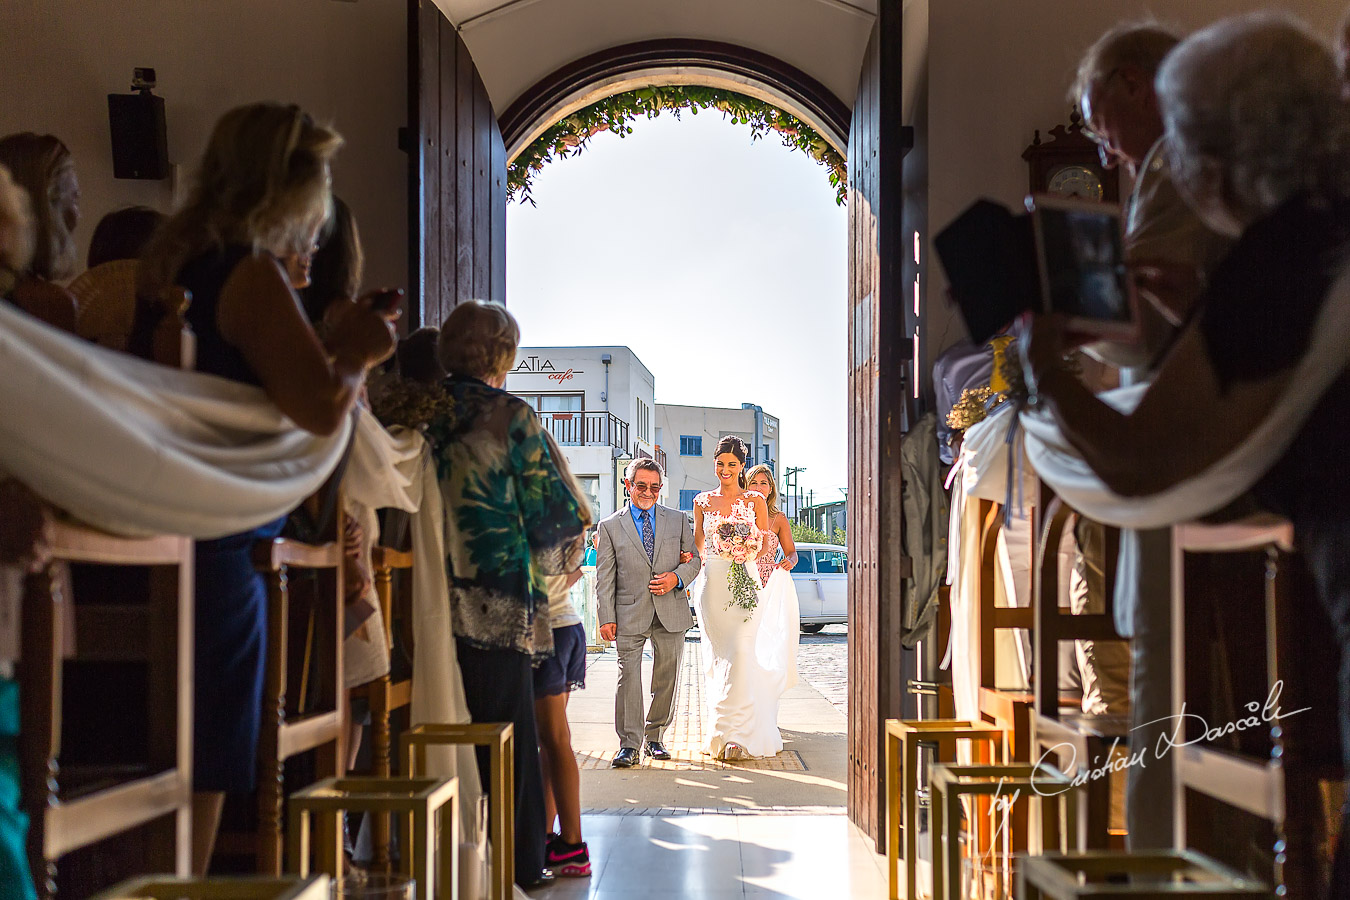 Bride`s arrival at her wedding Ceremony from Agia Paraskevi, in Paphos, Cyprus.